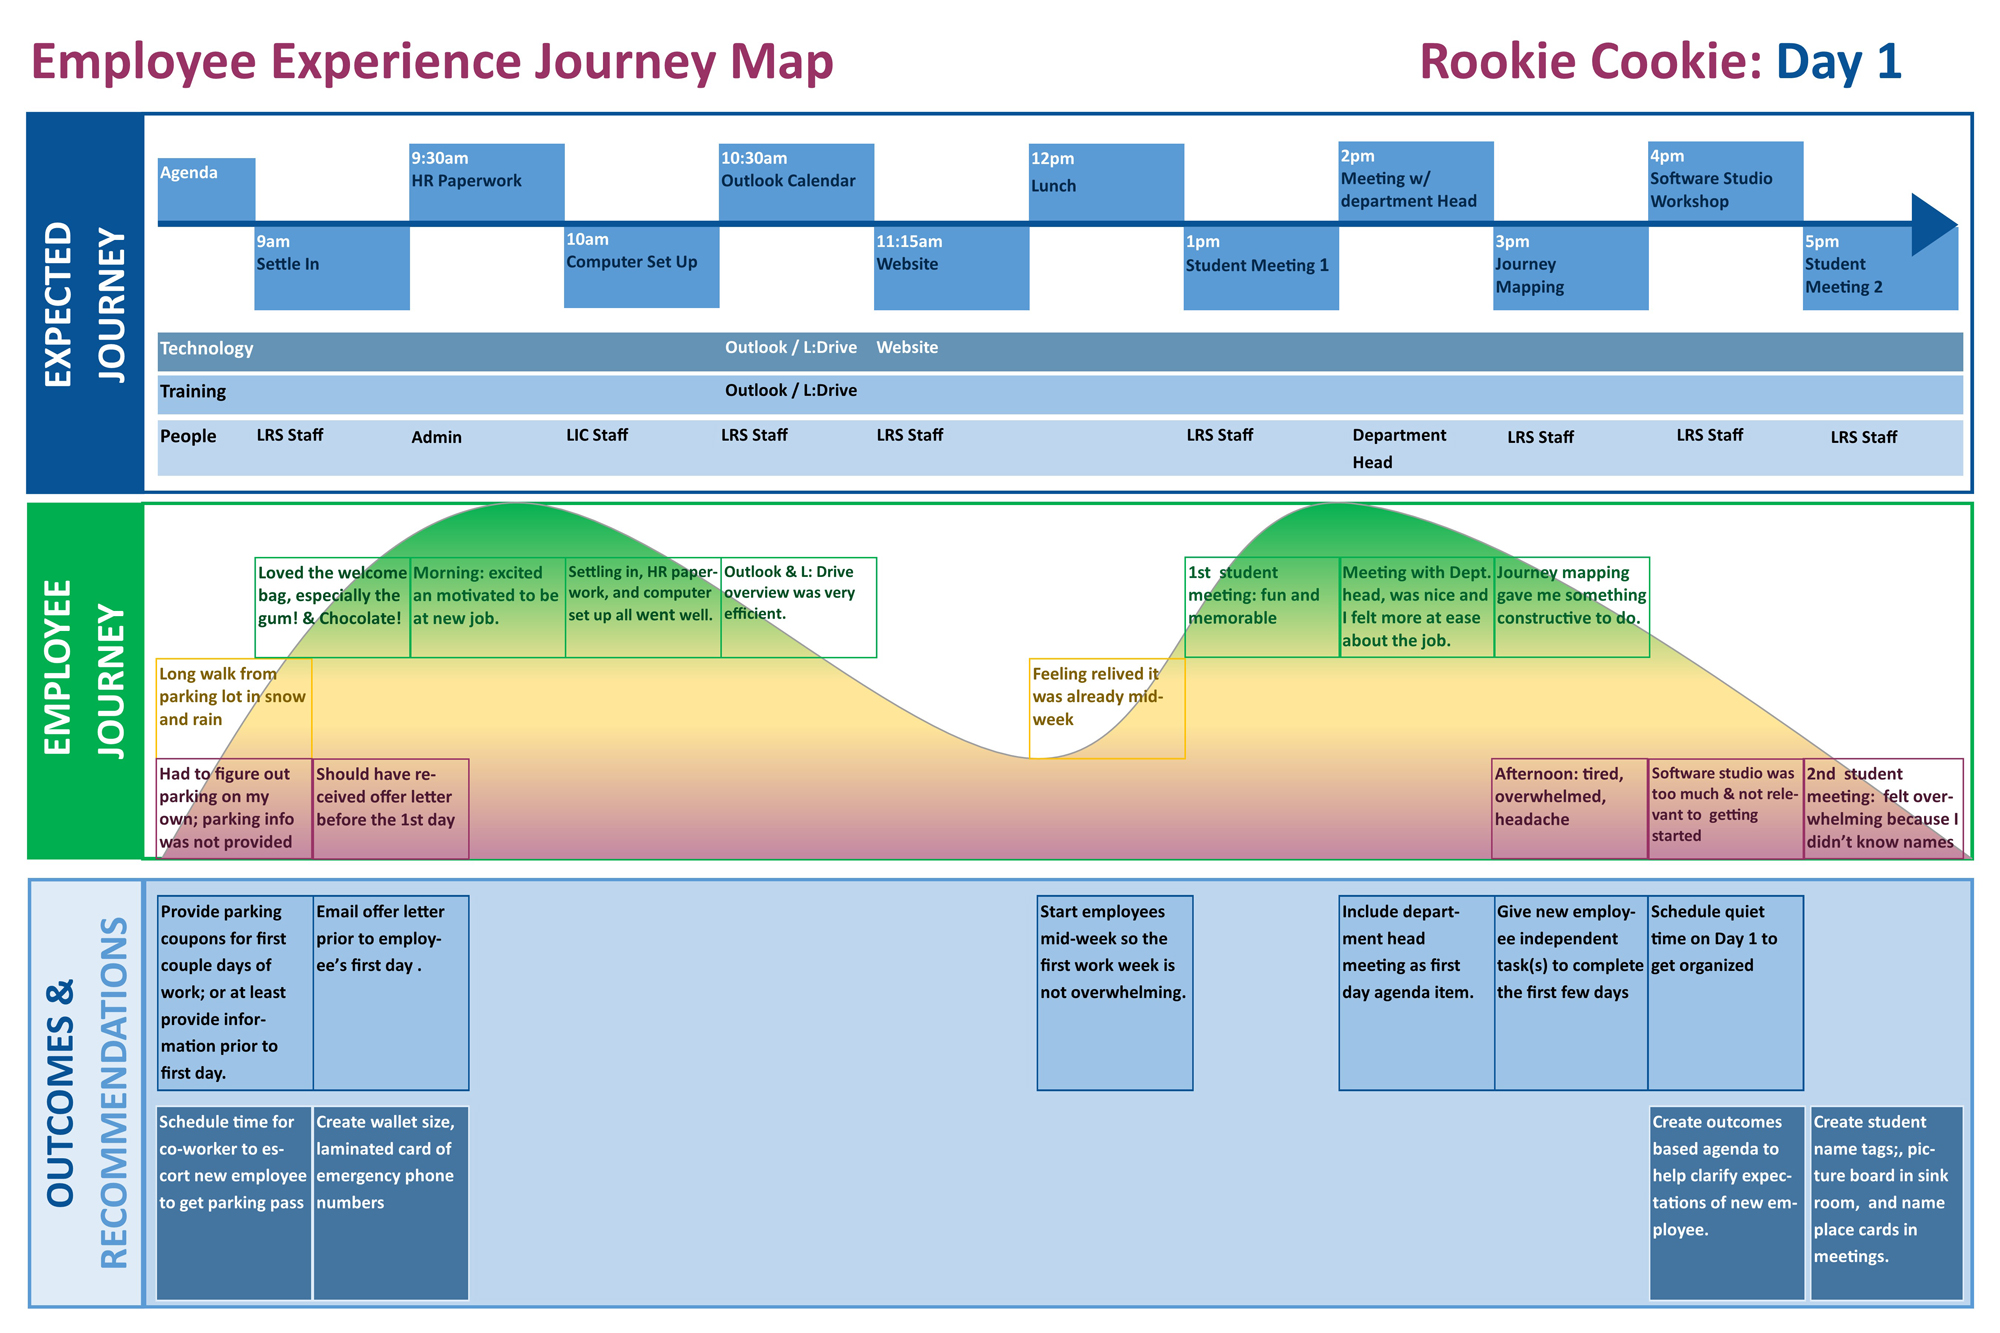 Figure 8. Rookie Cookie's journey during their first day.